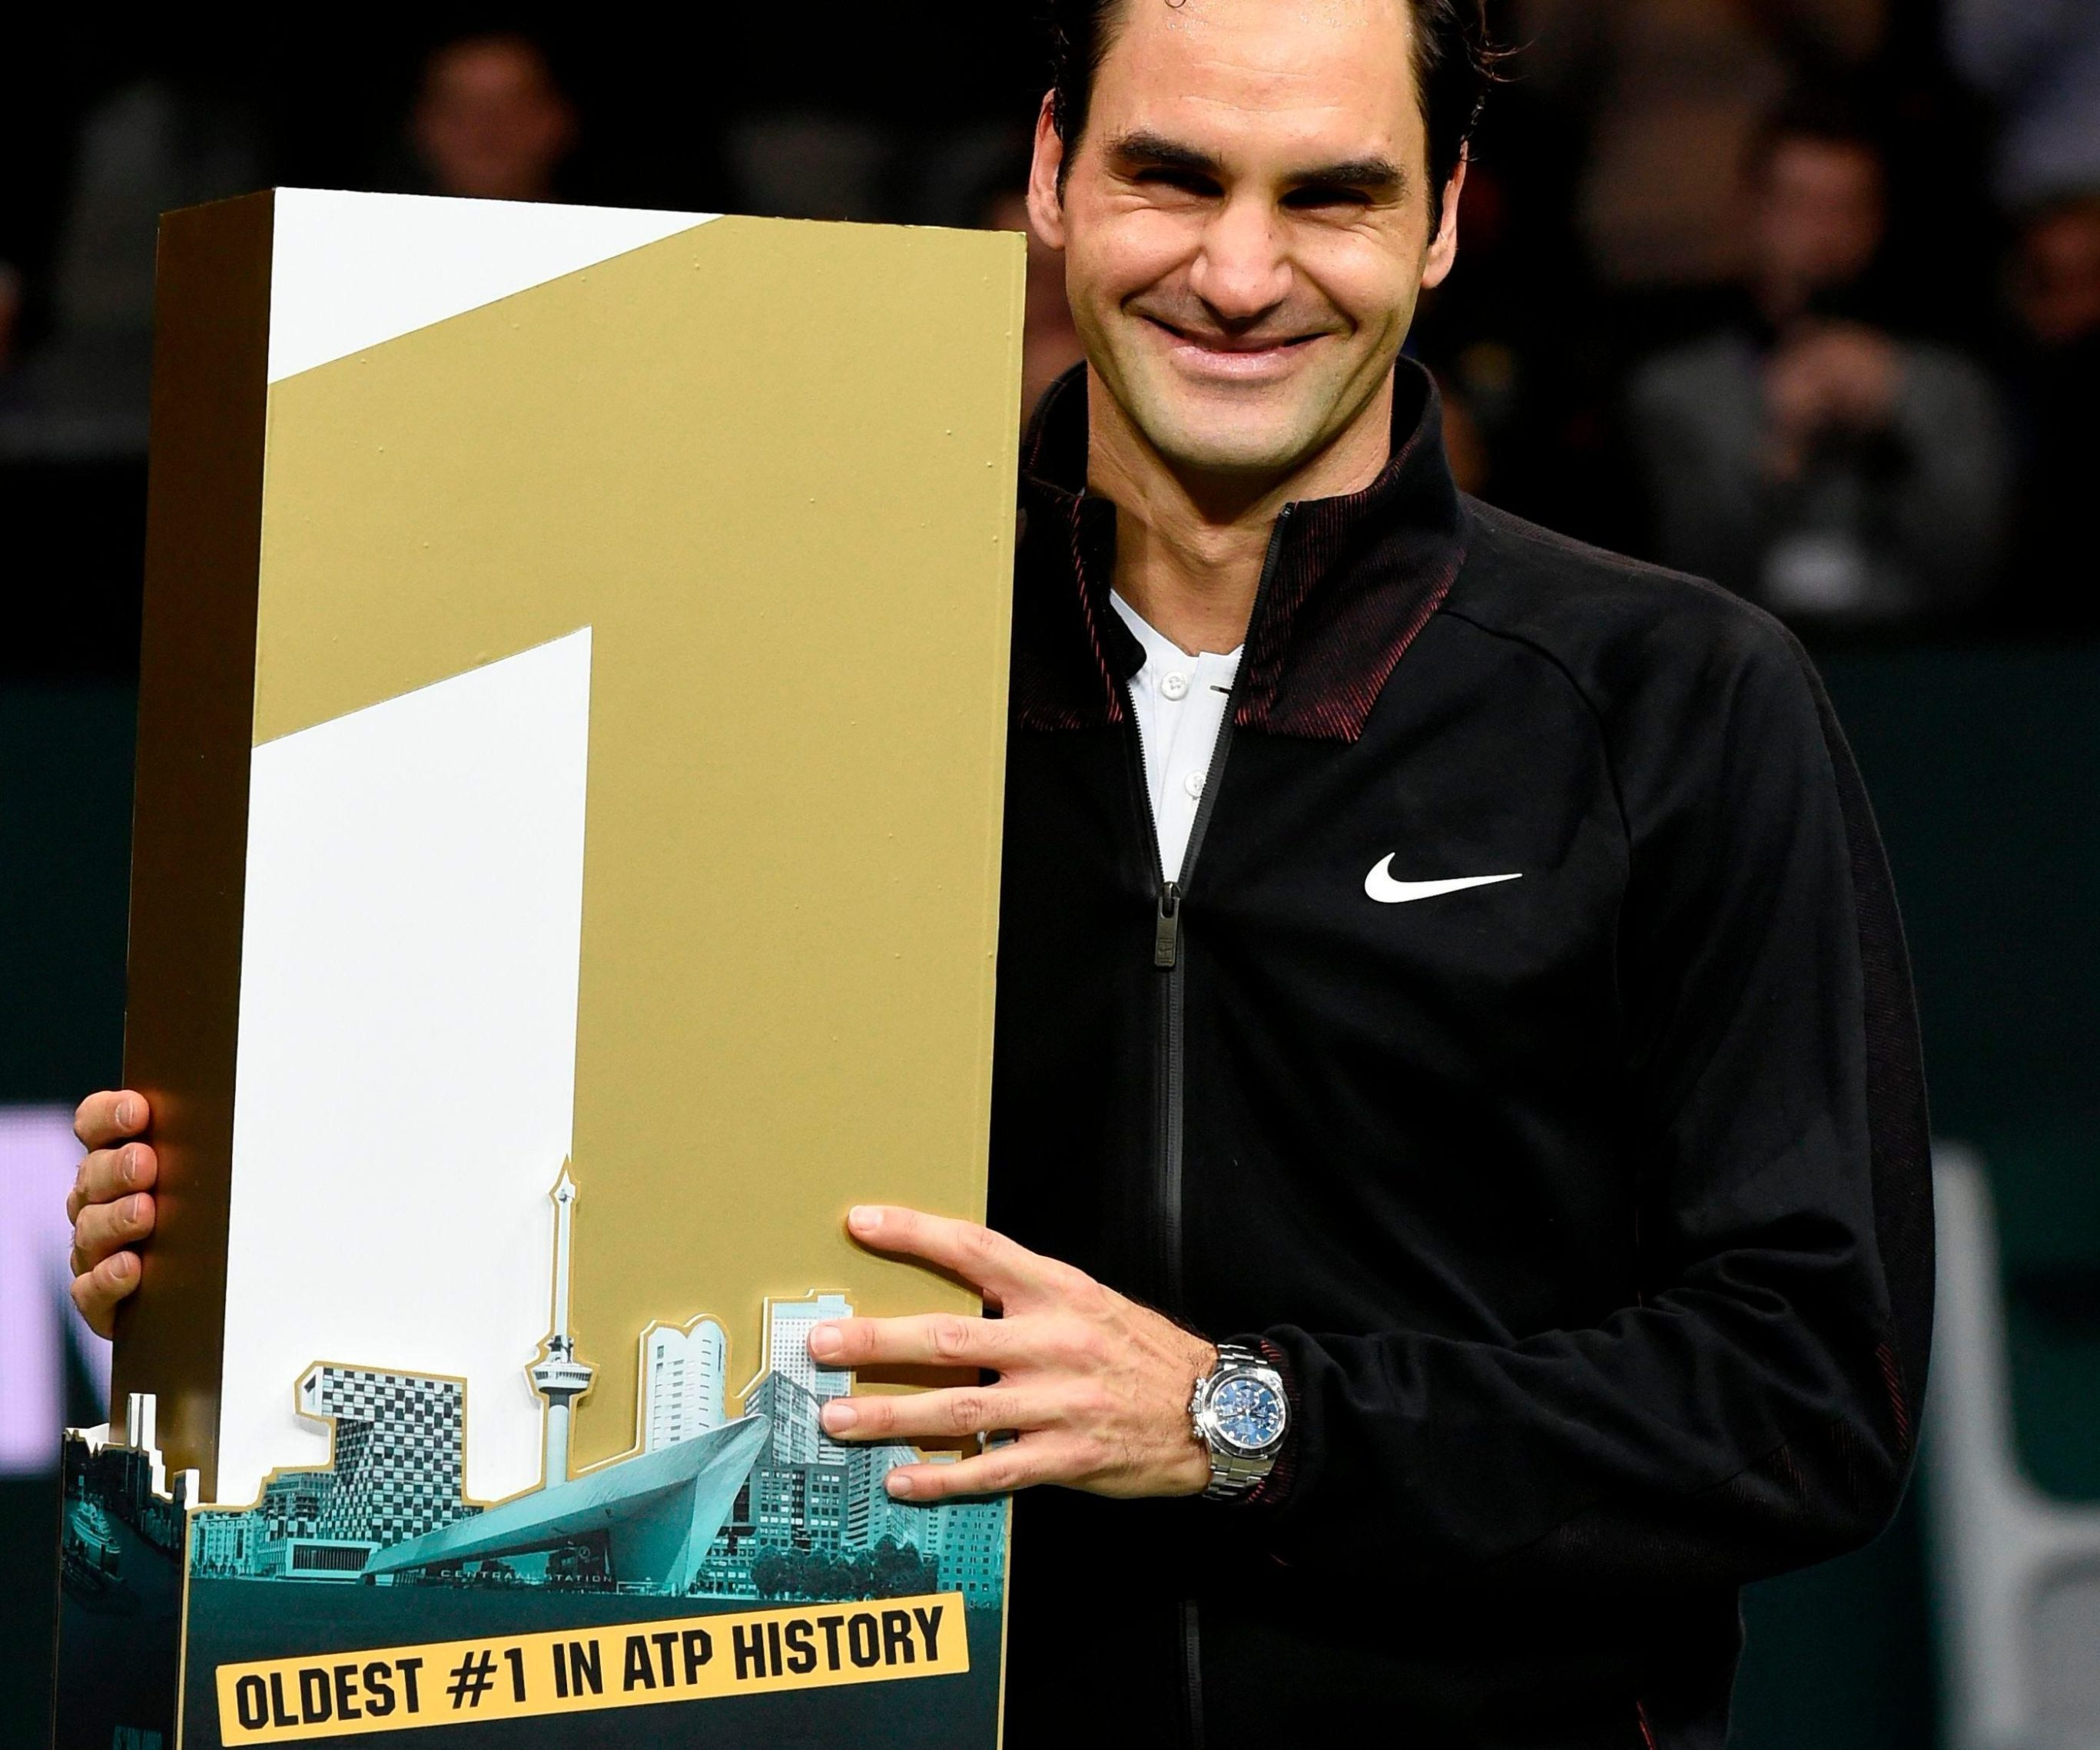 Roger Federer has made history again - as the oldest world No 1 ever in tennis